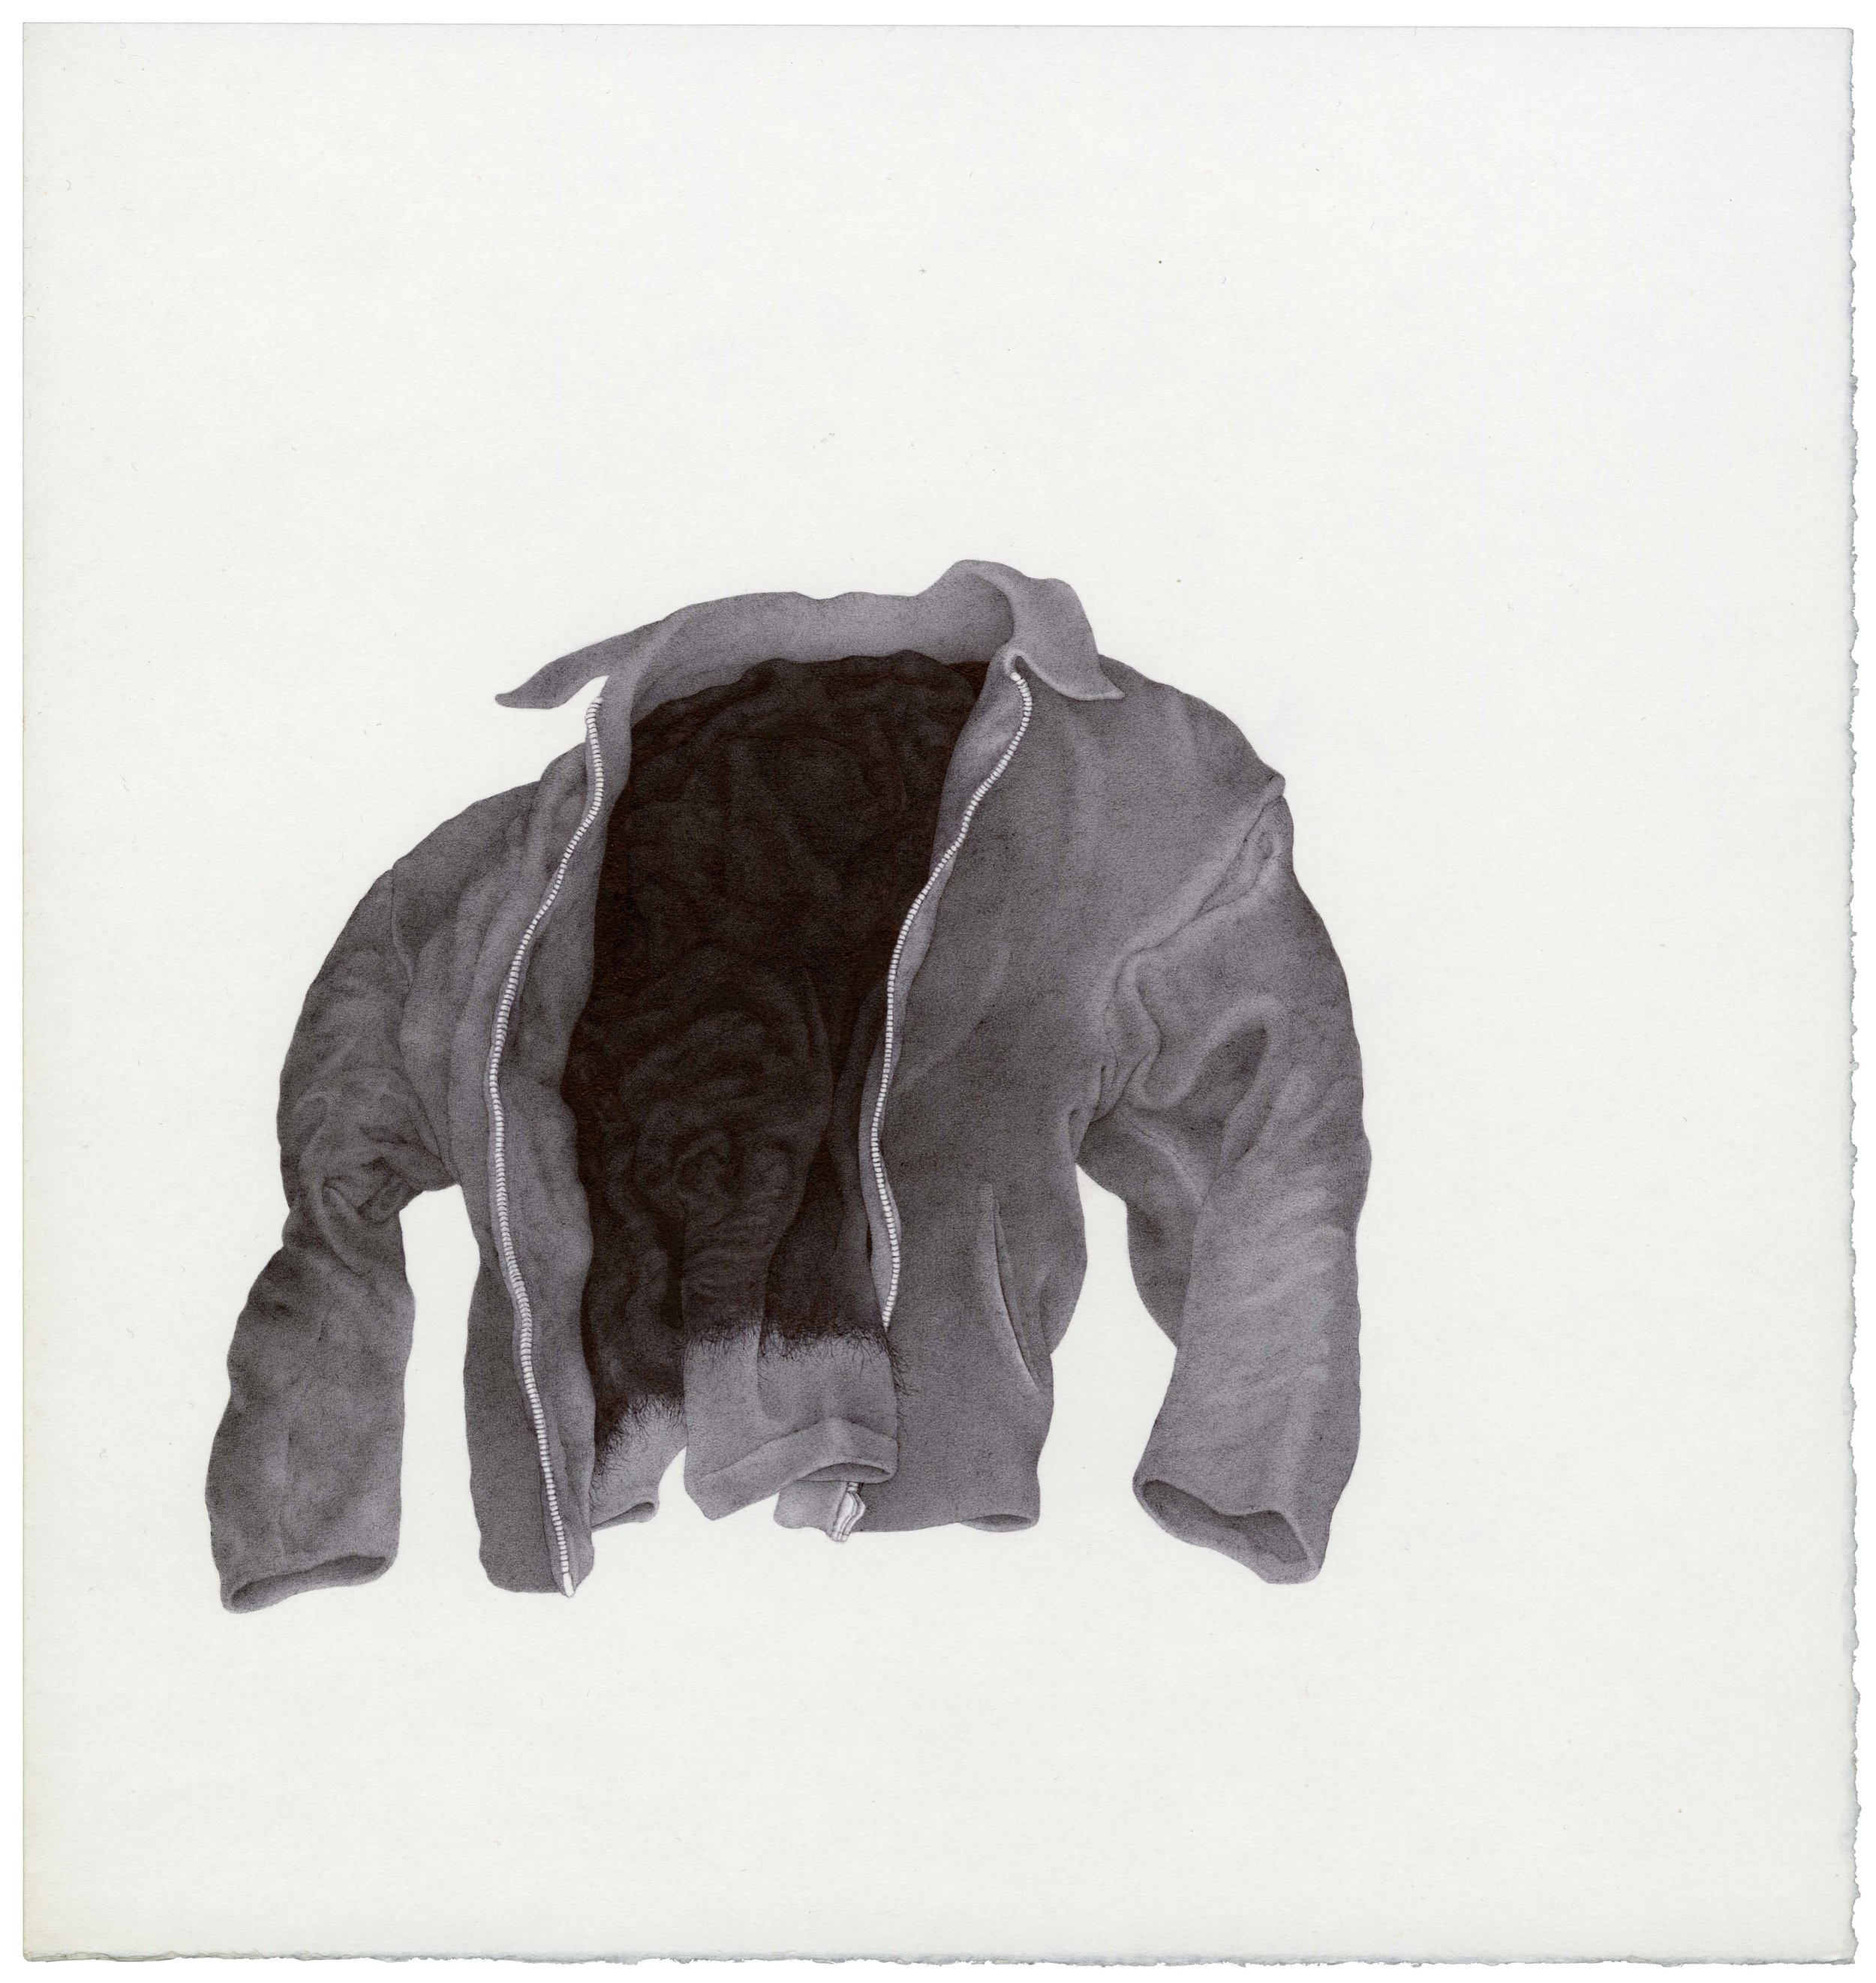 Drawing of a dark jacket floating in air